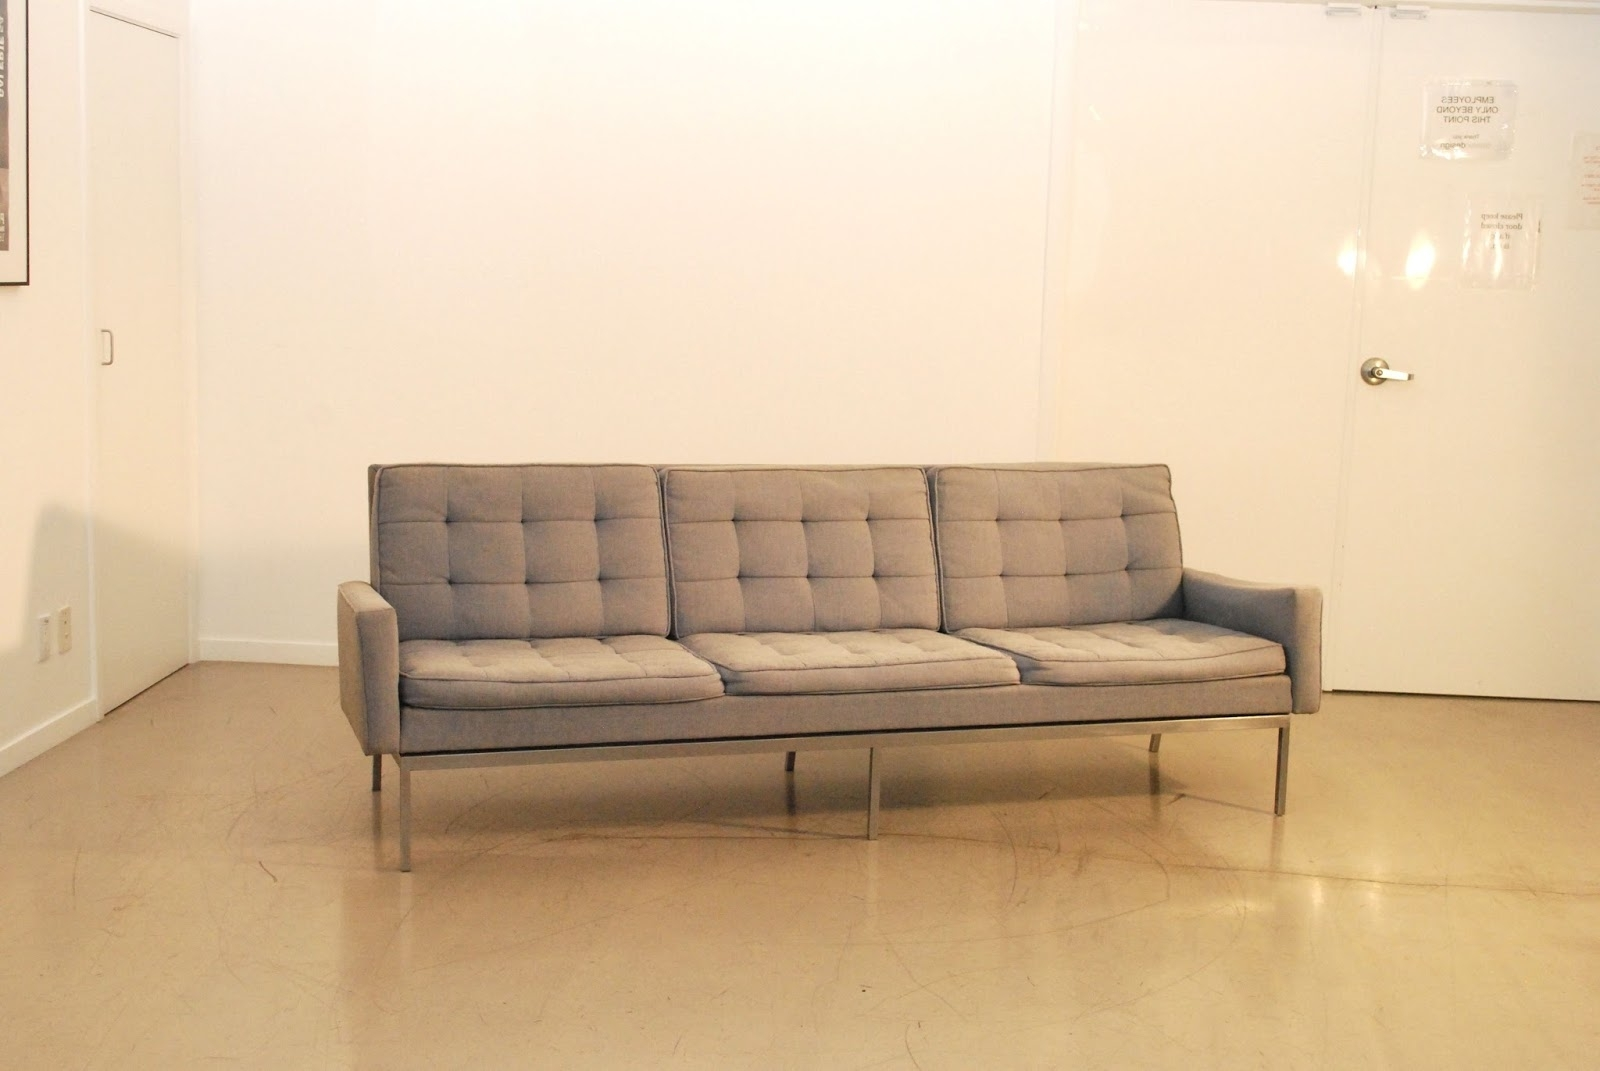 Widely Used Florence Sofas Inside Classic Design: Before & After: Vintage Florence Knoll Sofa (View 20 of 20)